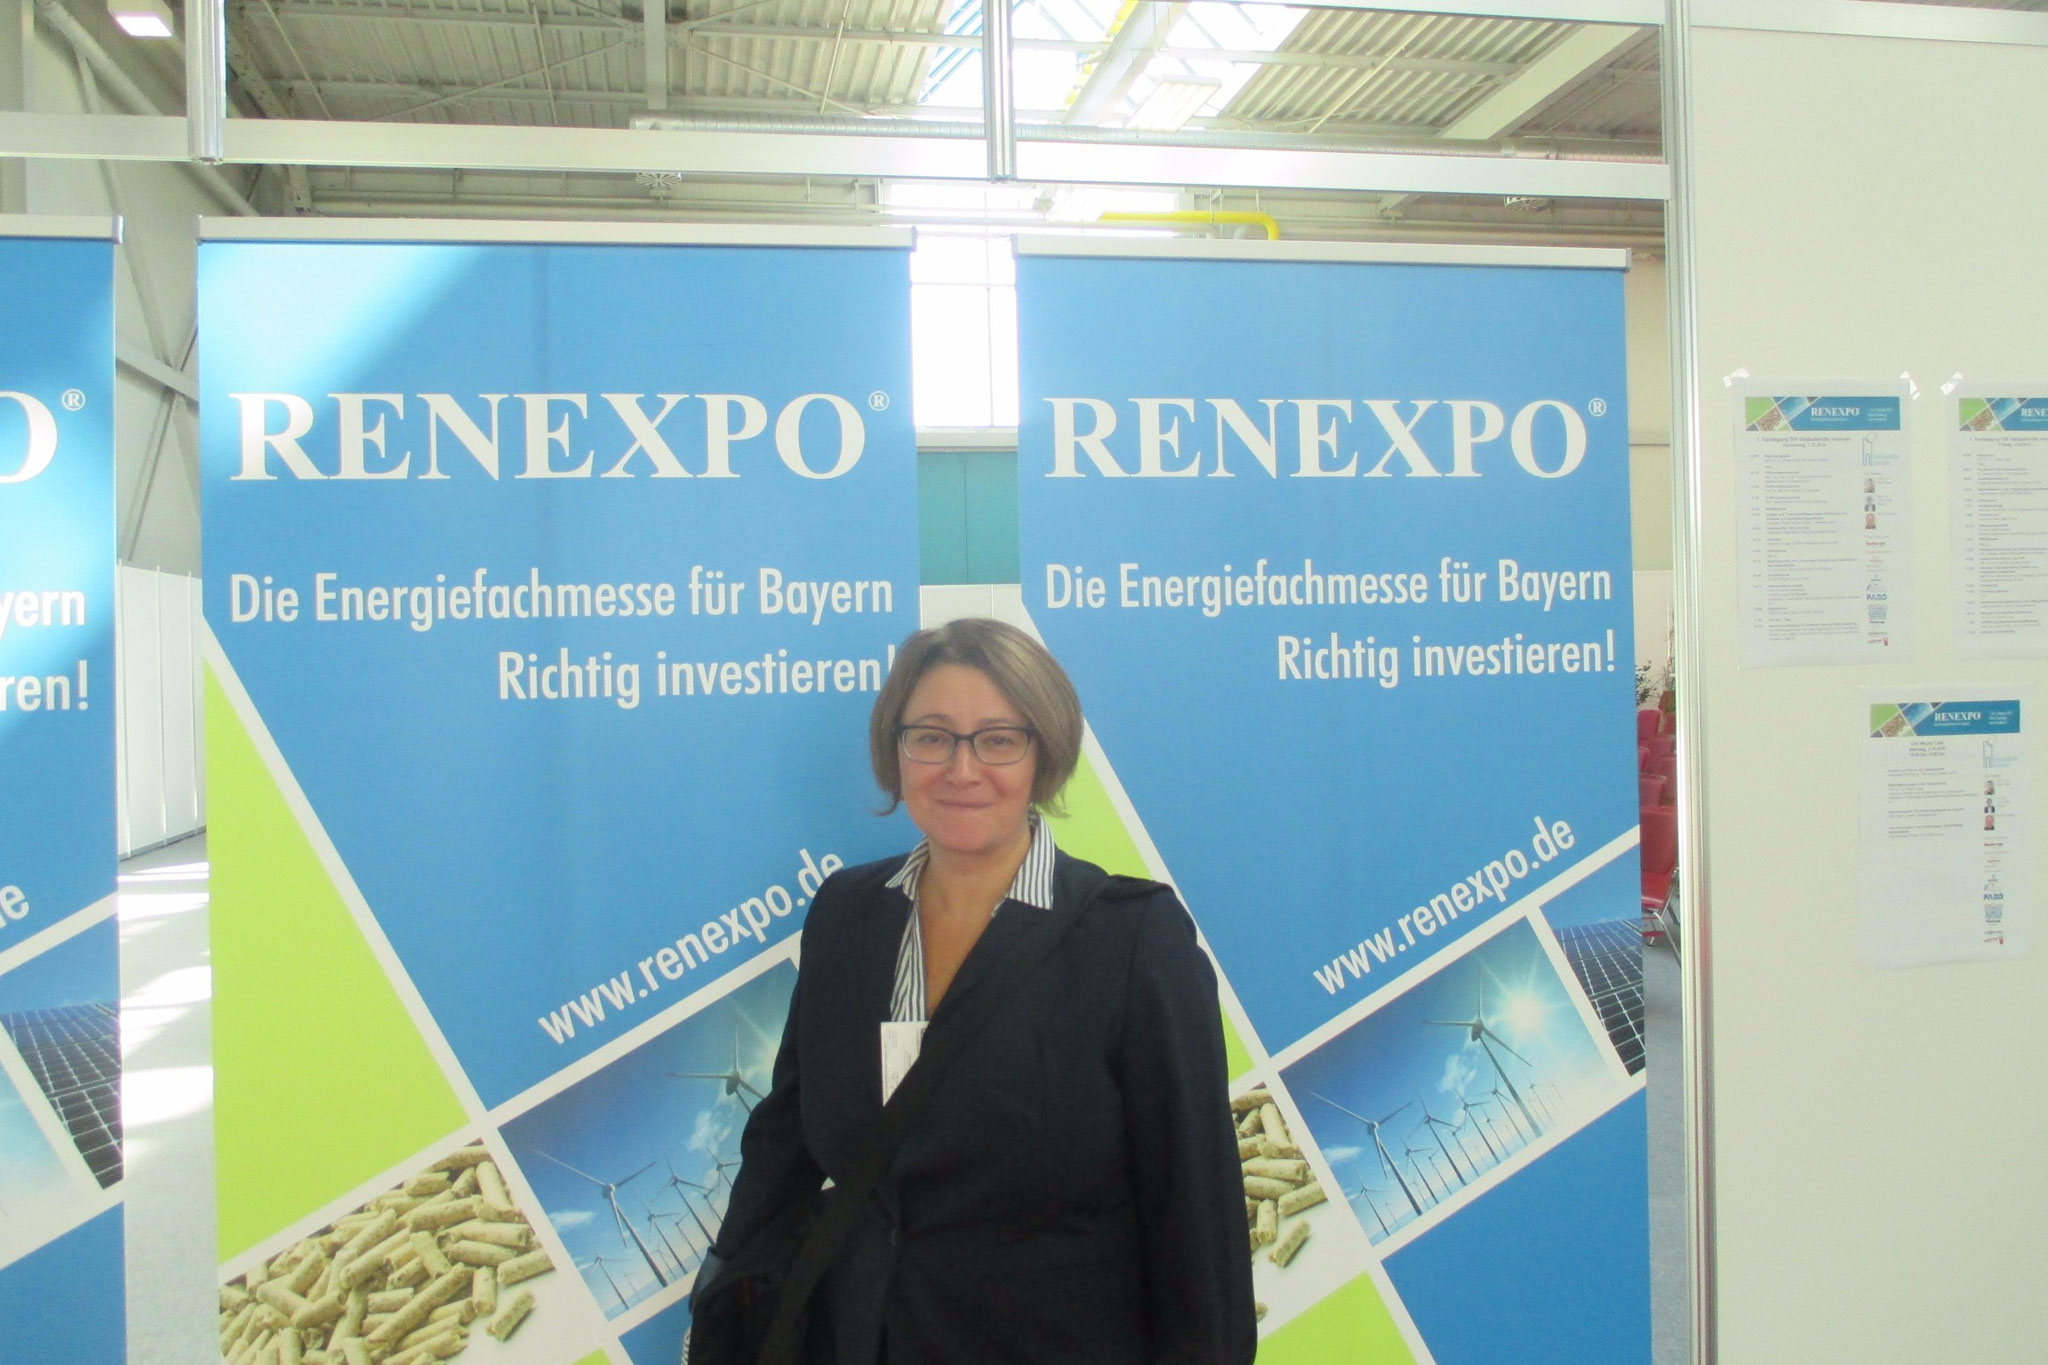 Visiting RENEXPO 2015 in Augsburg!